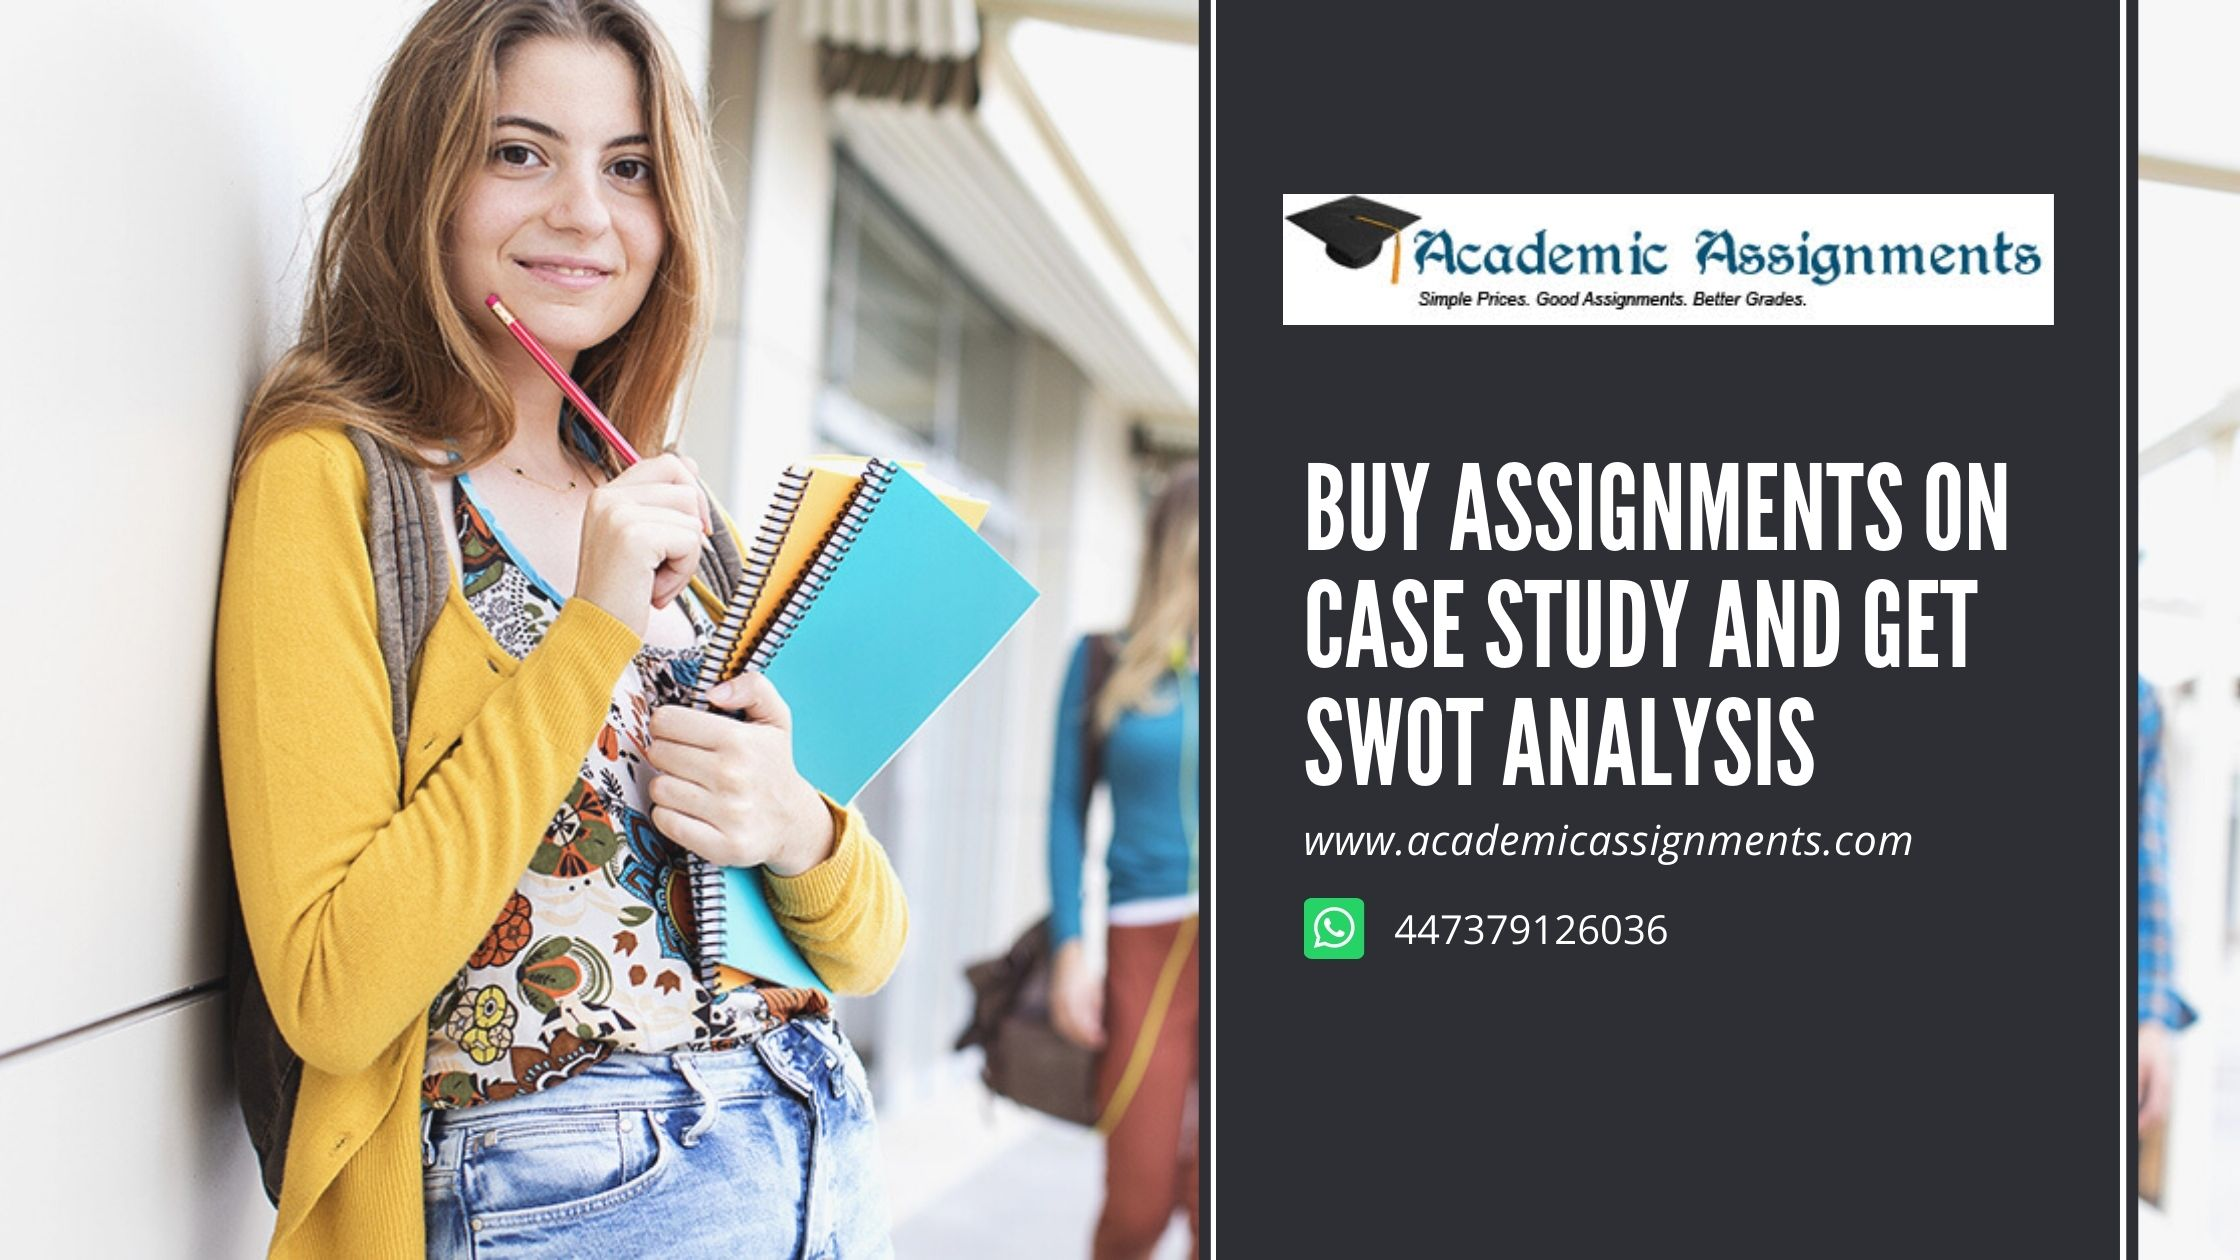 Buy Assignments On Case Study And Get SWOT Analysis